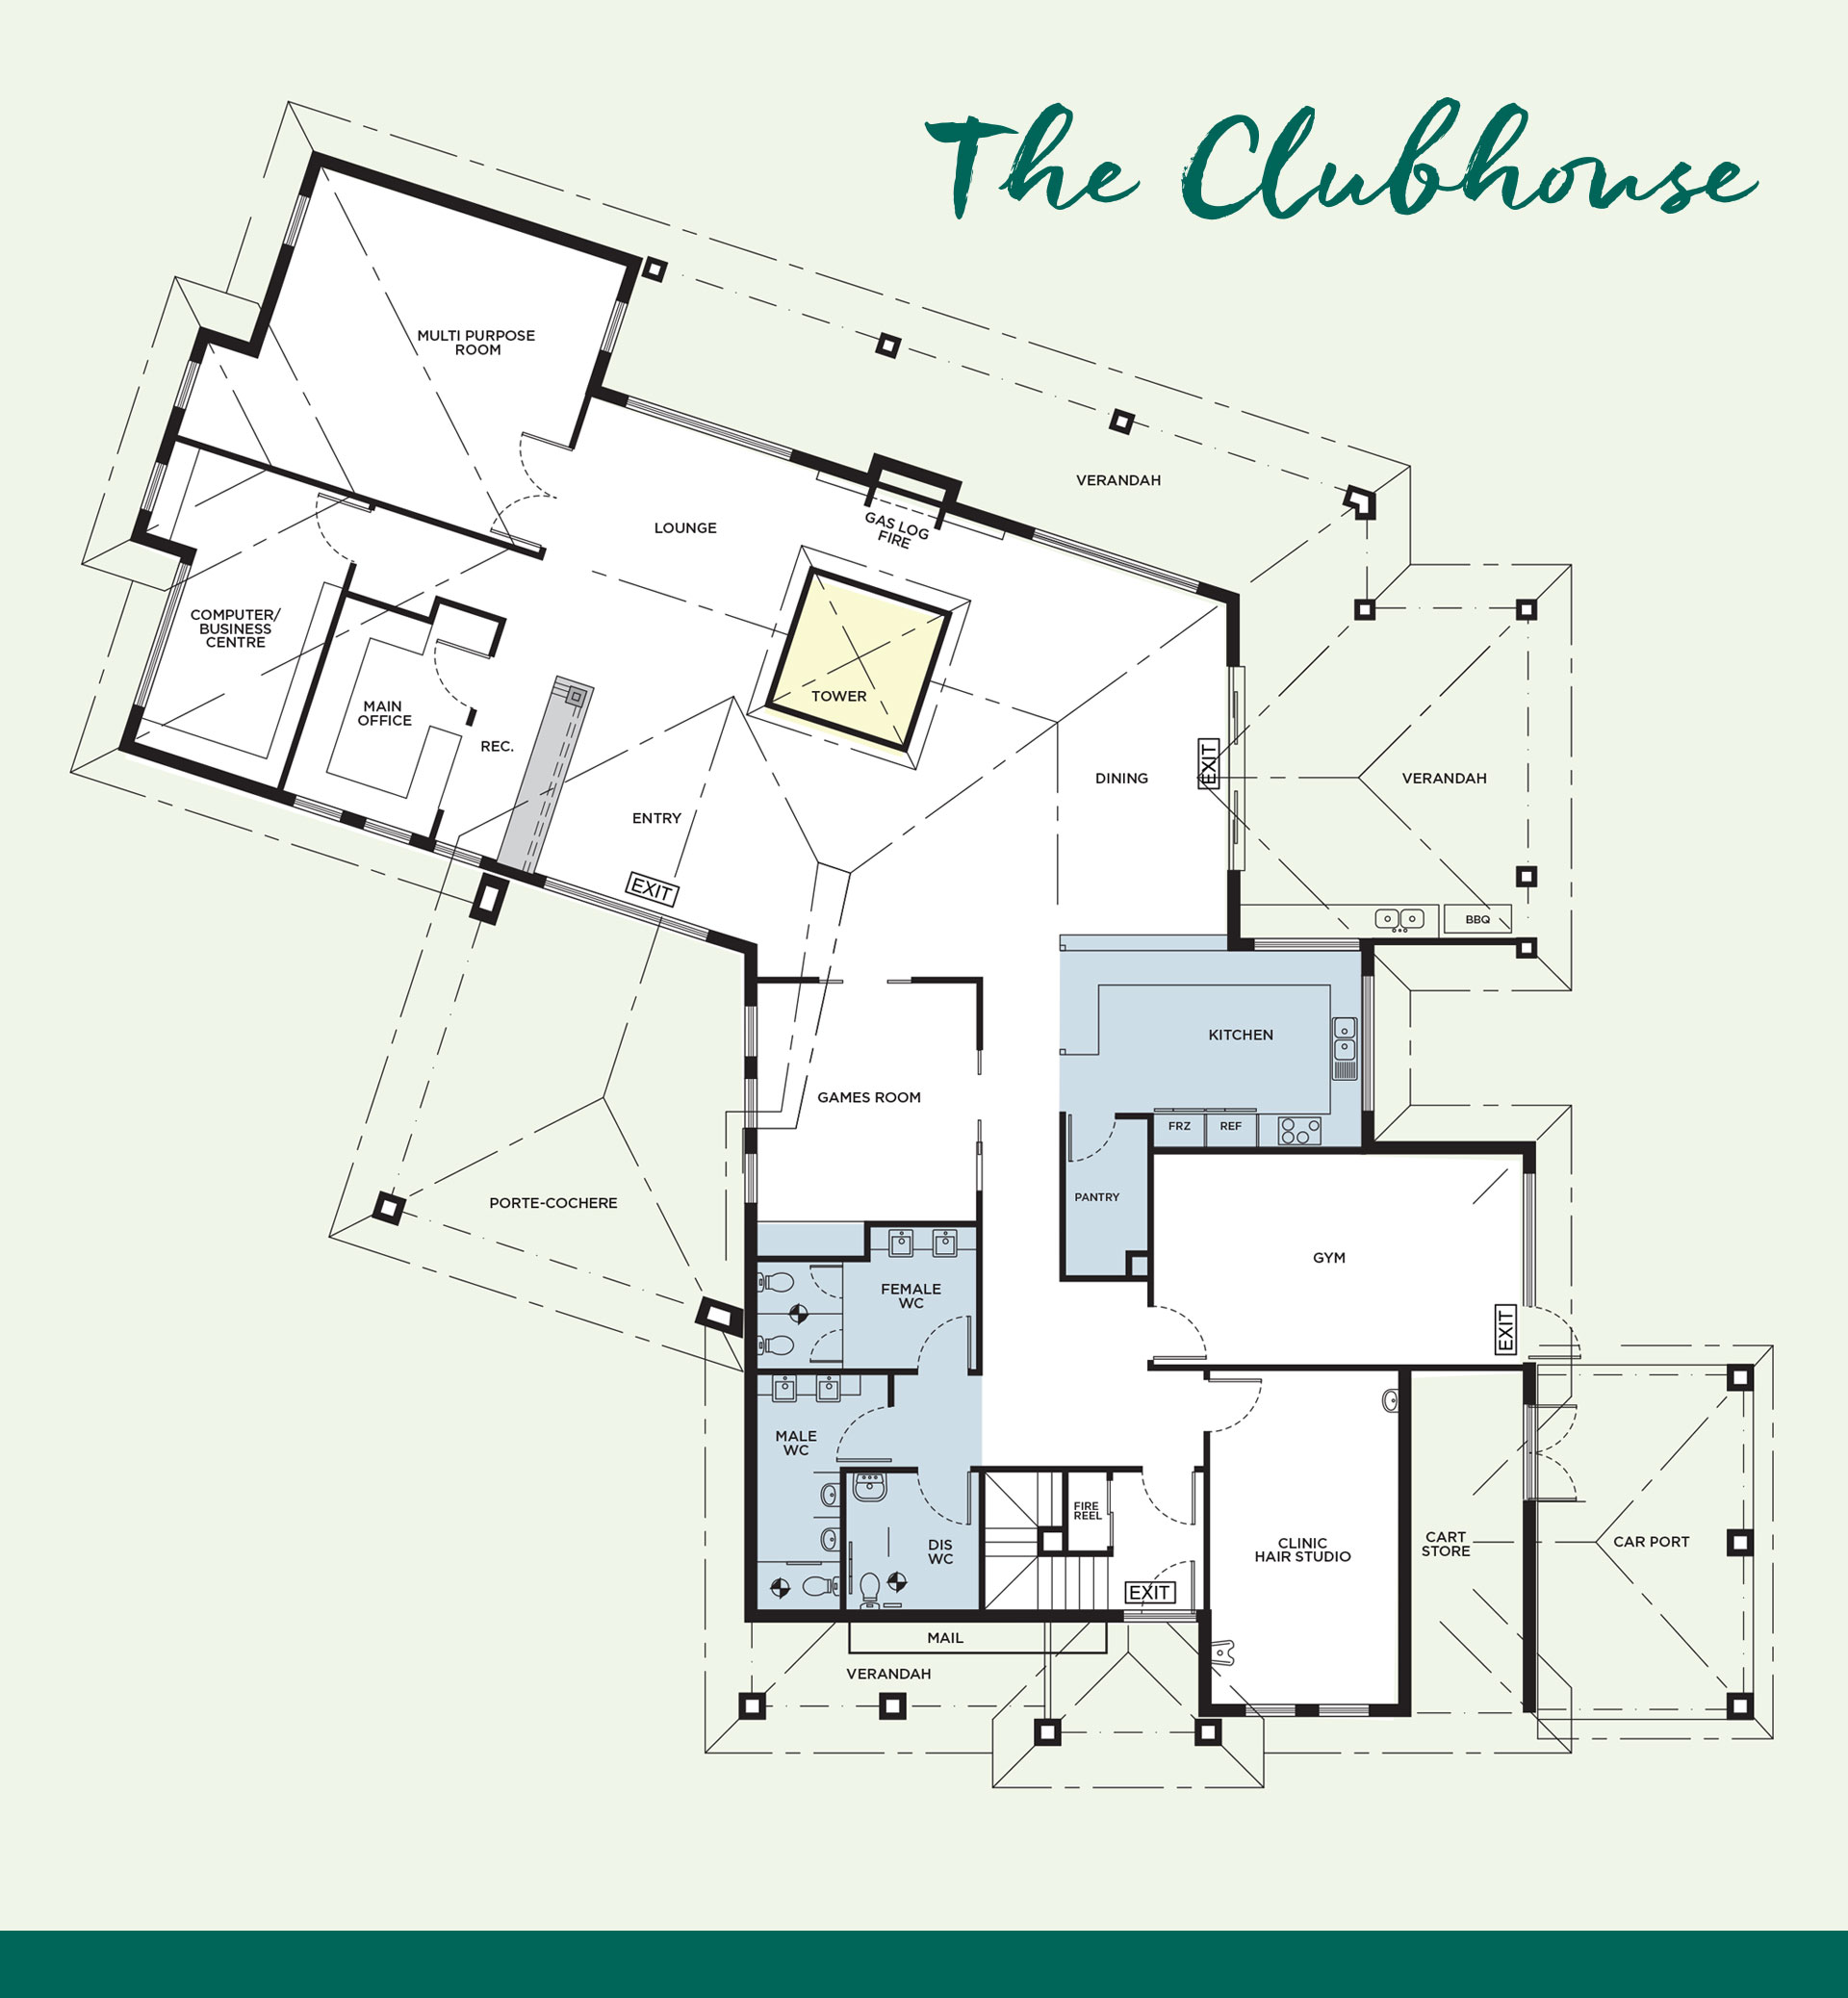 Club house 1920 pix floor plan master peninsula for Retirement village house plans